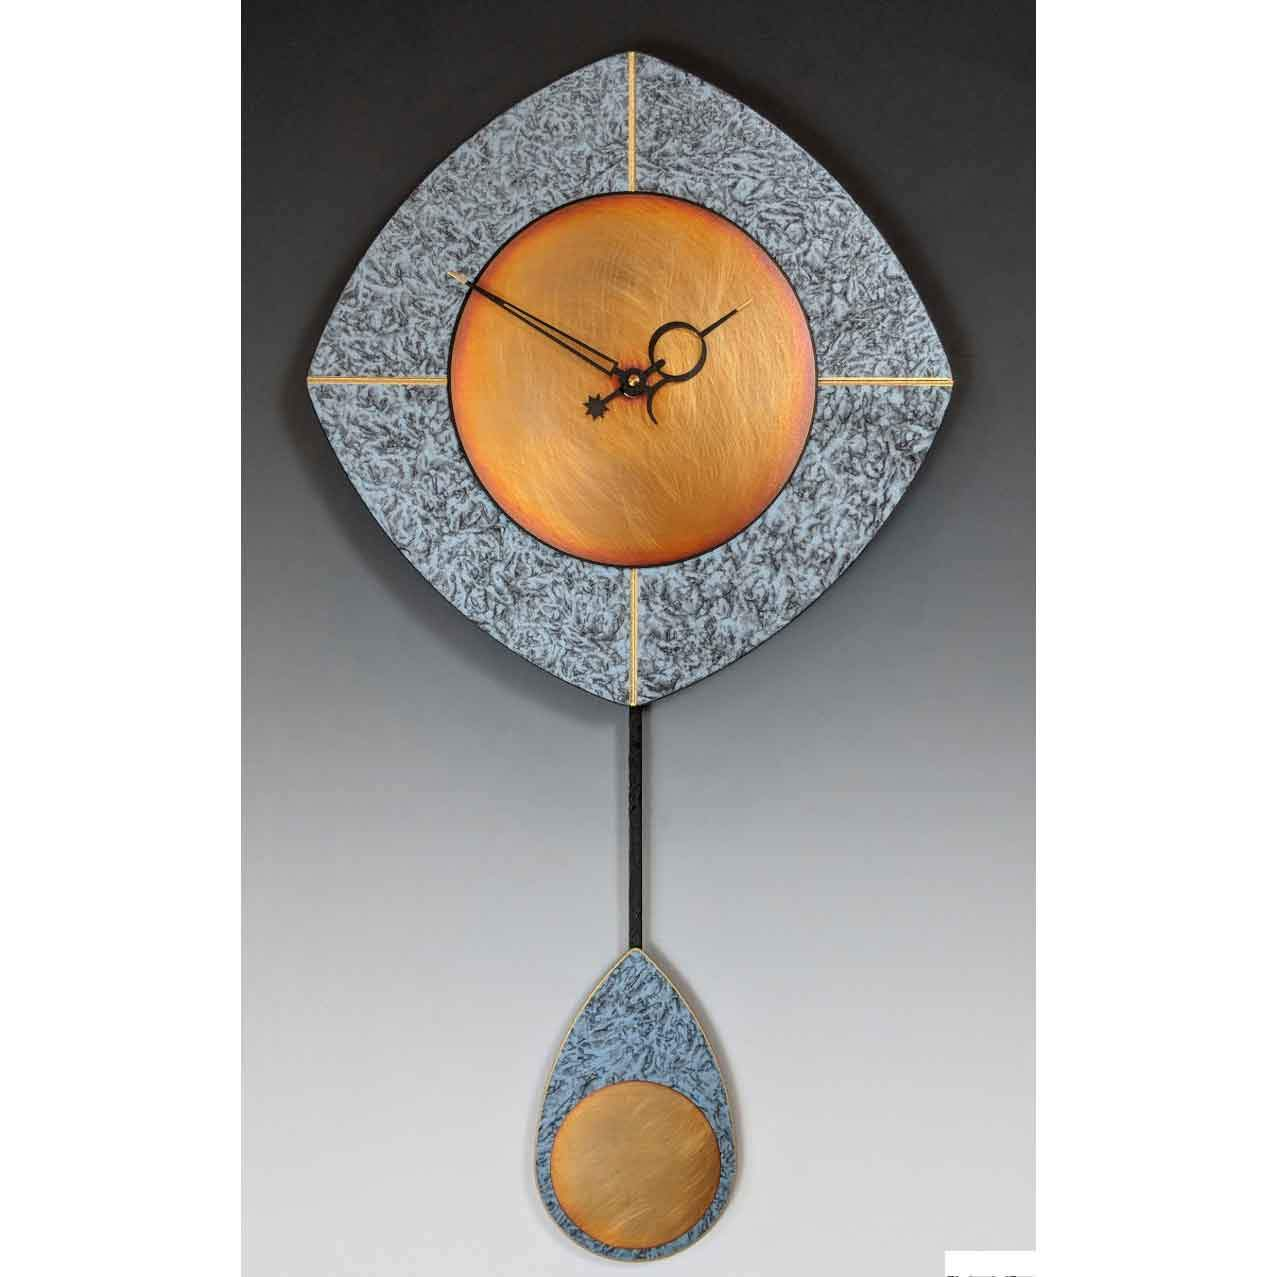 Leonie Lacouette Blue L Drop Pendulum Wall Clock Artistic Wall Clocks Sweetheart Gallery Contemporary Craft Gallery Fine American Craft Art Design Handmade Home Personal Accessories